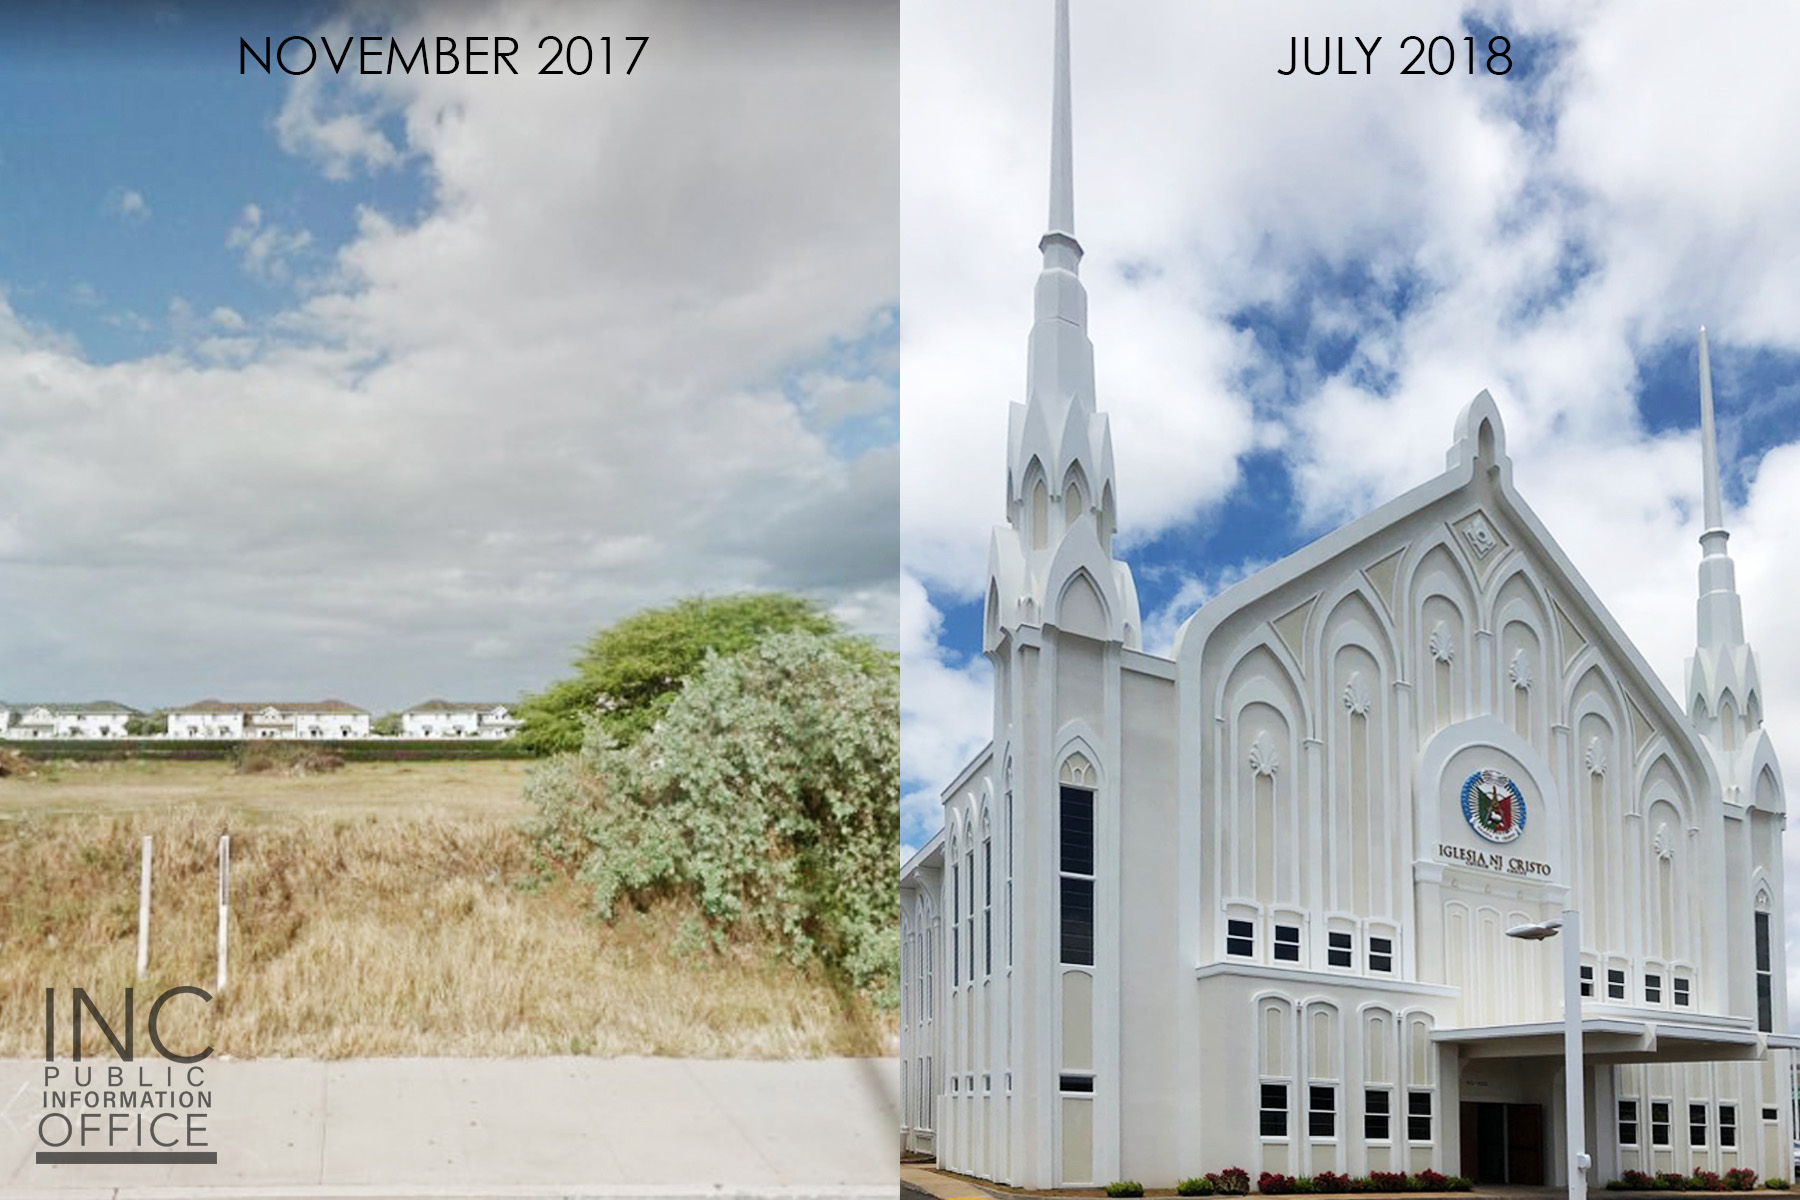 Before and after picture of how Chapel got built from November 2017 - July 2018